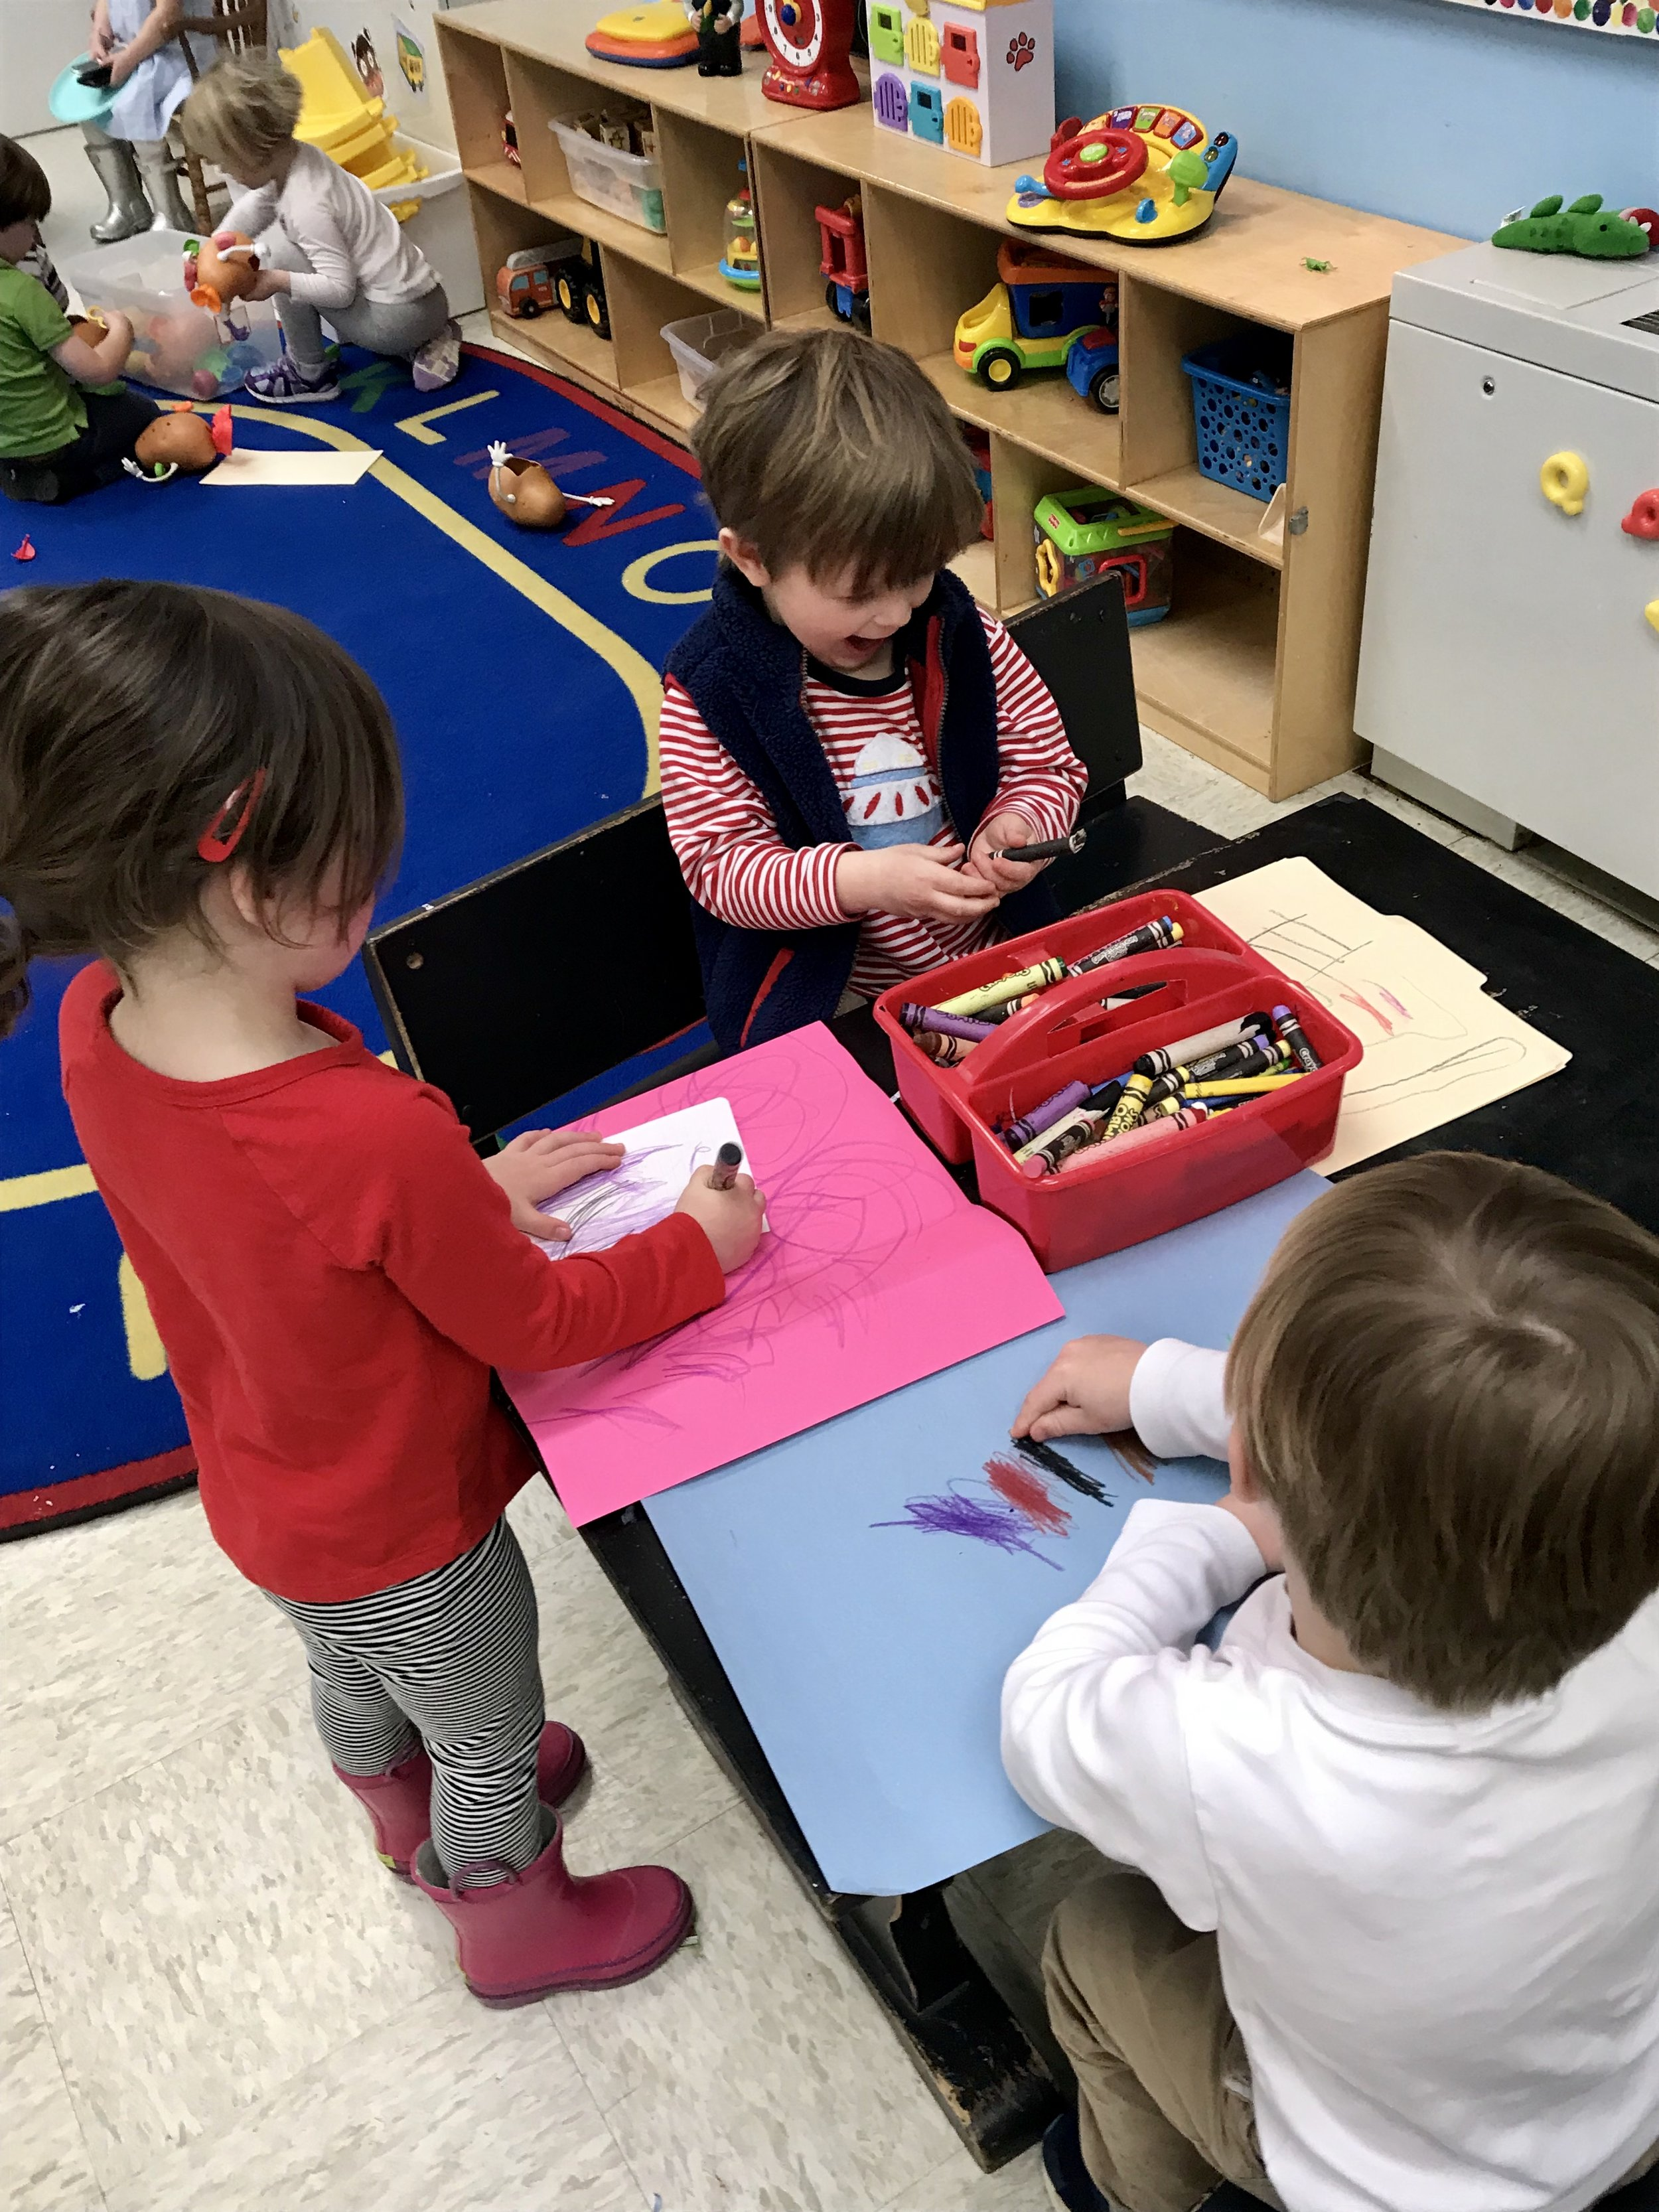 Working as a group to color.